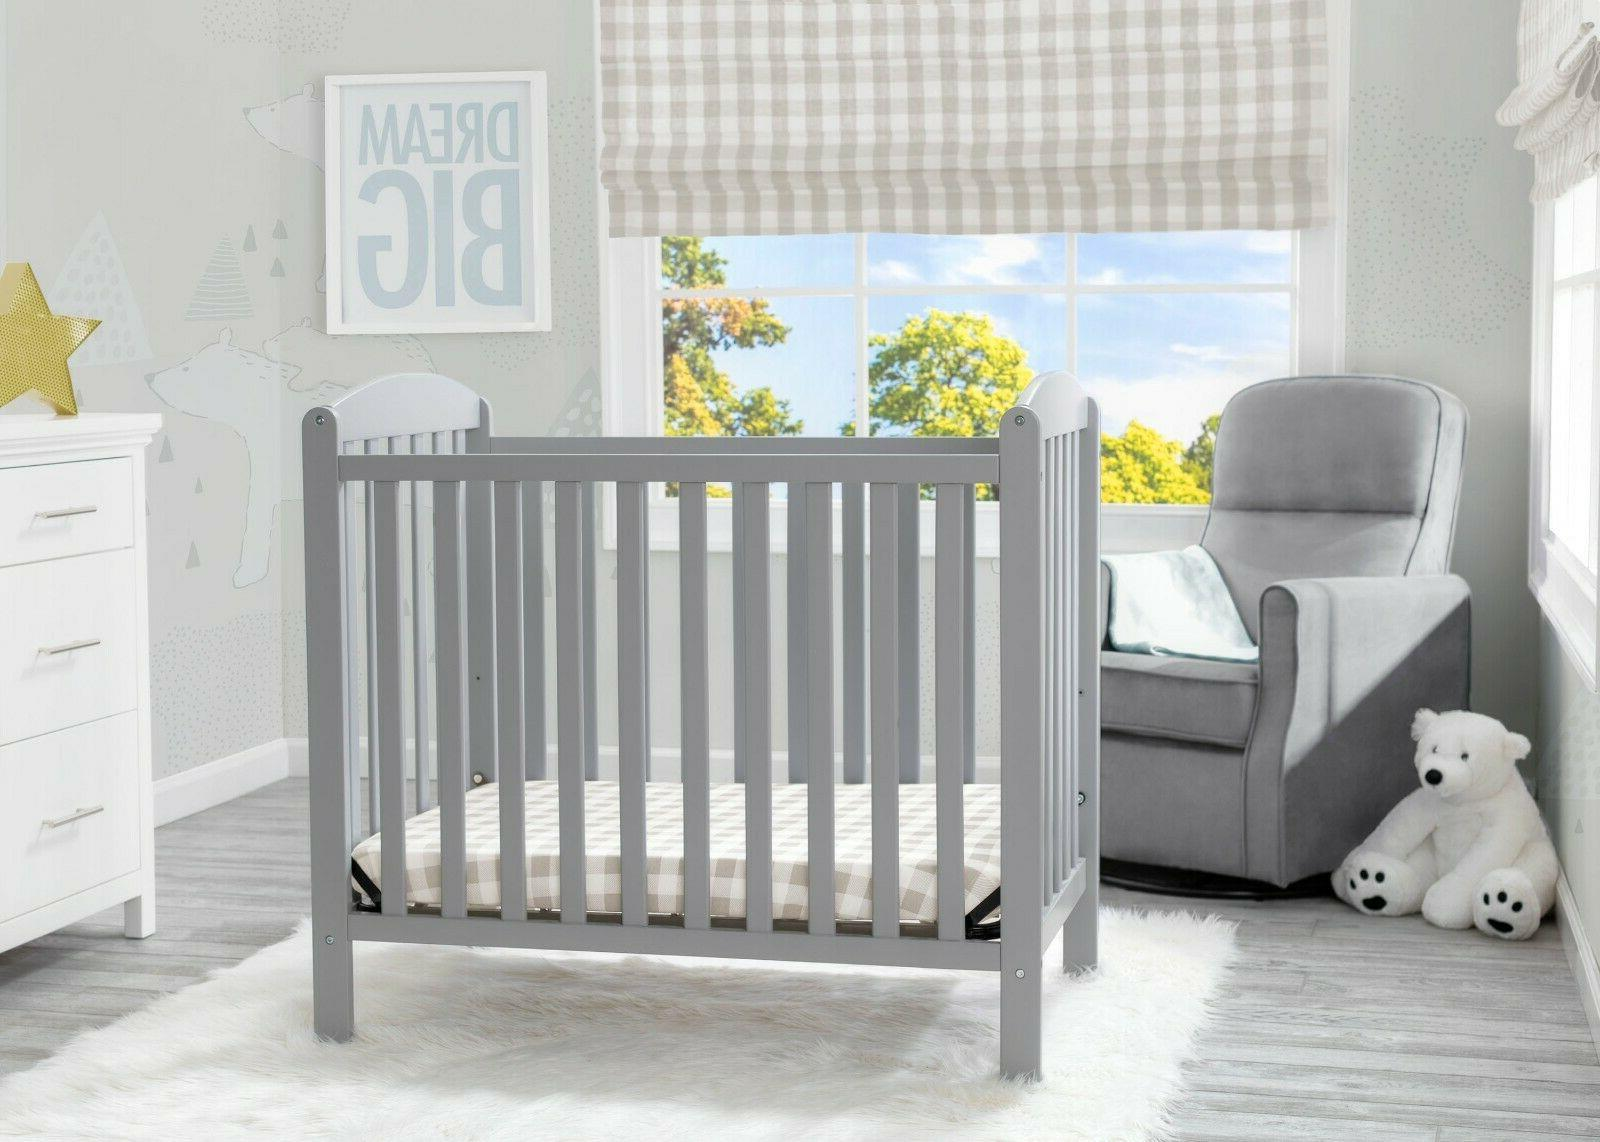 Delta Children Mini Convertible Baby Crib with Mattress